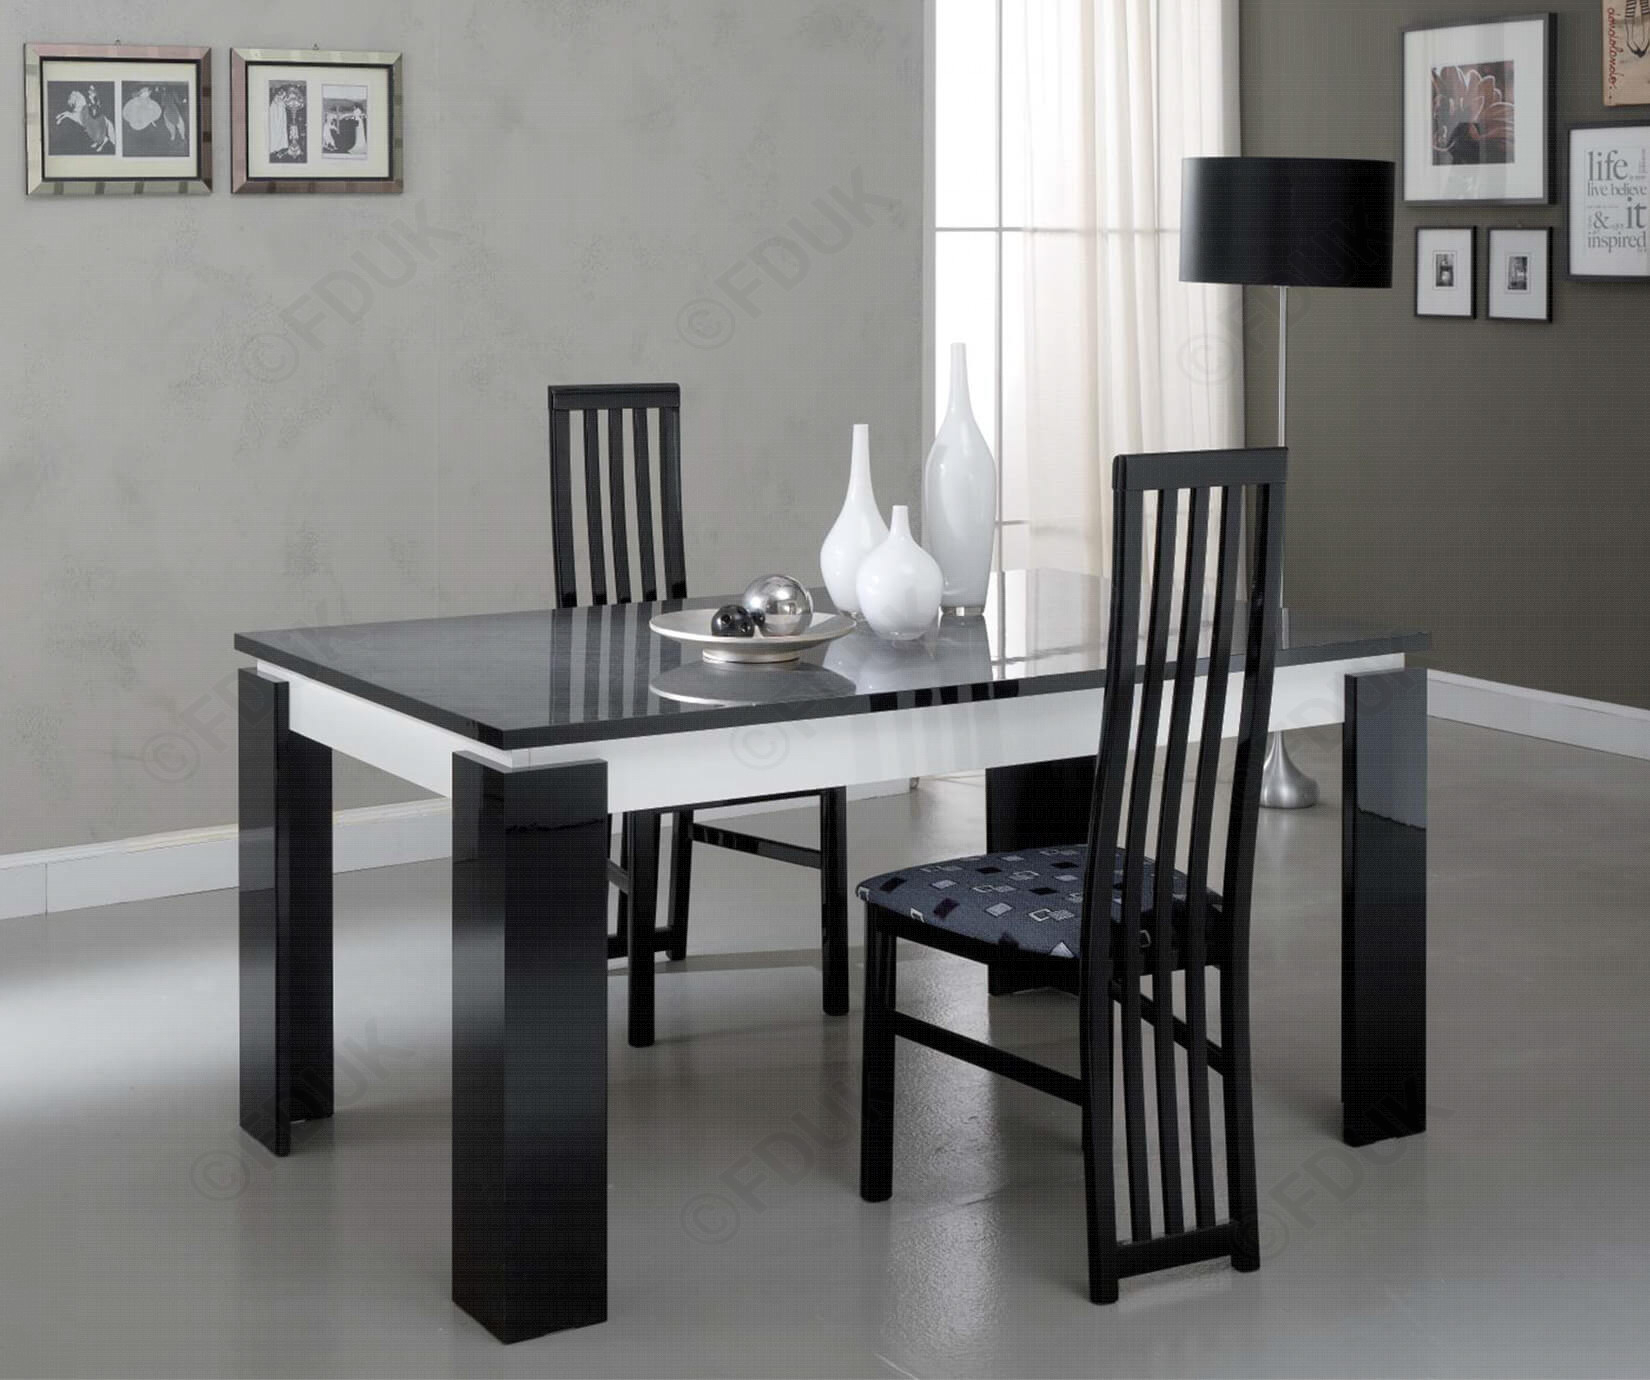 San Martino Polaris Dining Table With 4 Chairs Intended For Latest Martino Dining Tables (View 4 of 25)